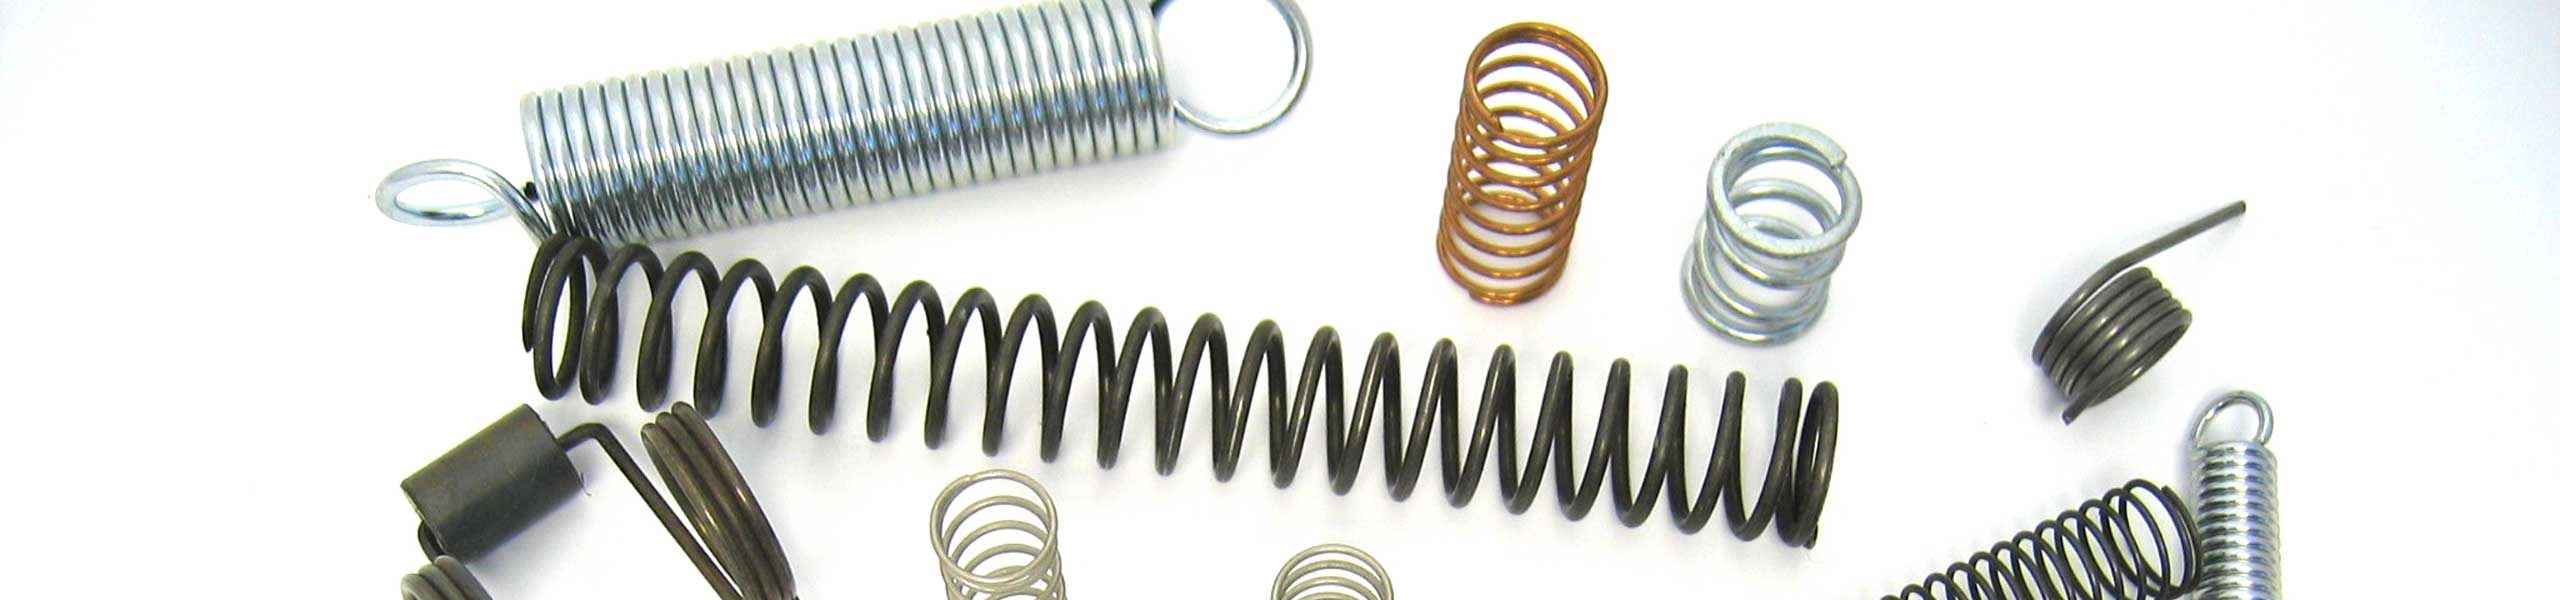 Extension Springs from Magrenko